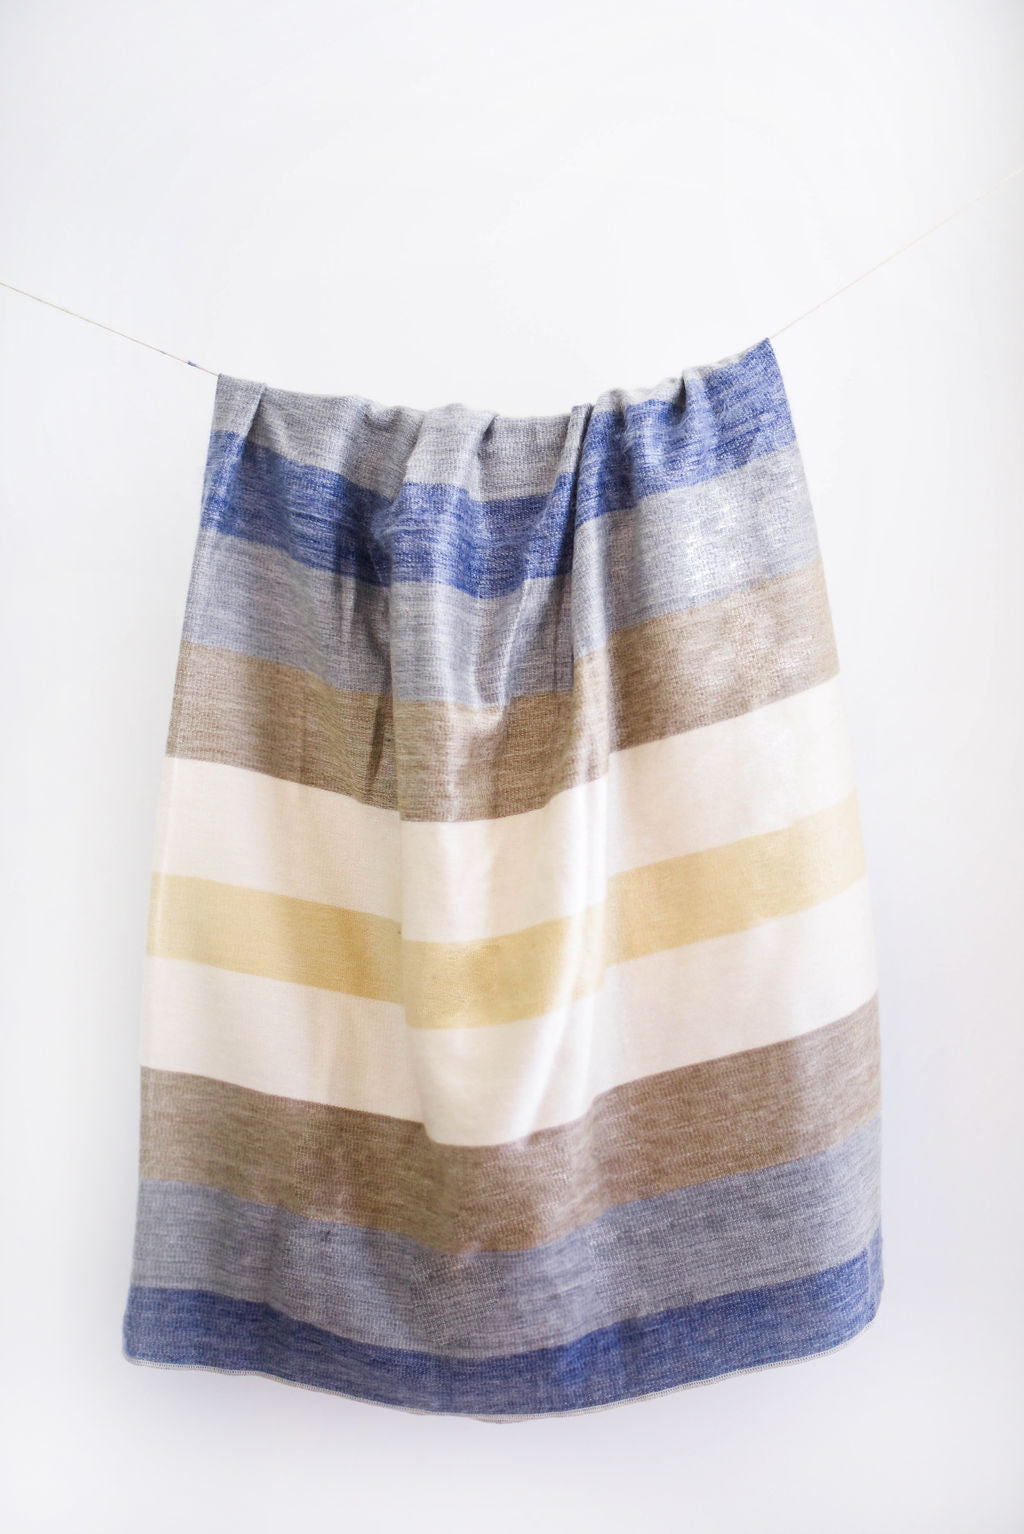 Blue, Brown and White Alpaca Blanket - Sand Castle